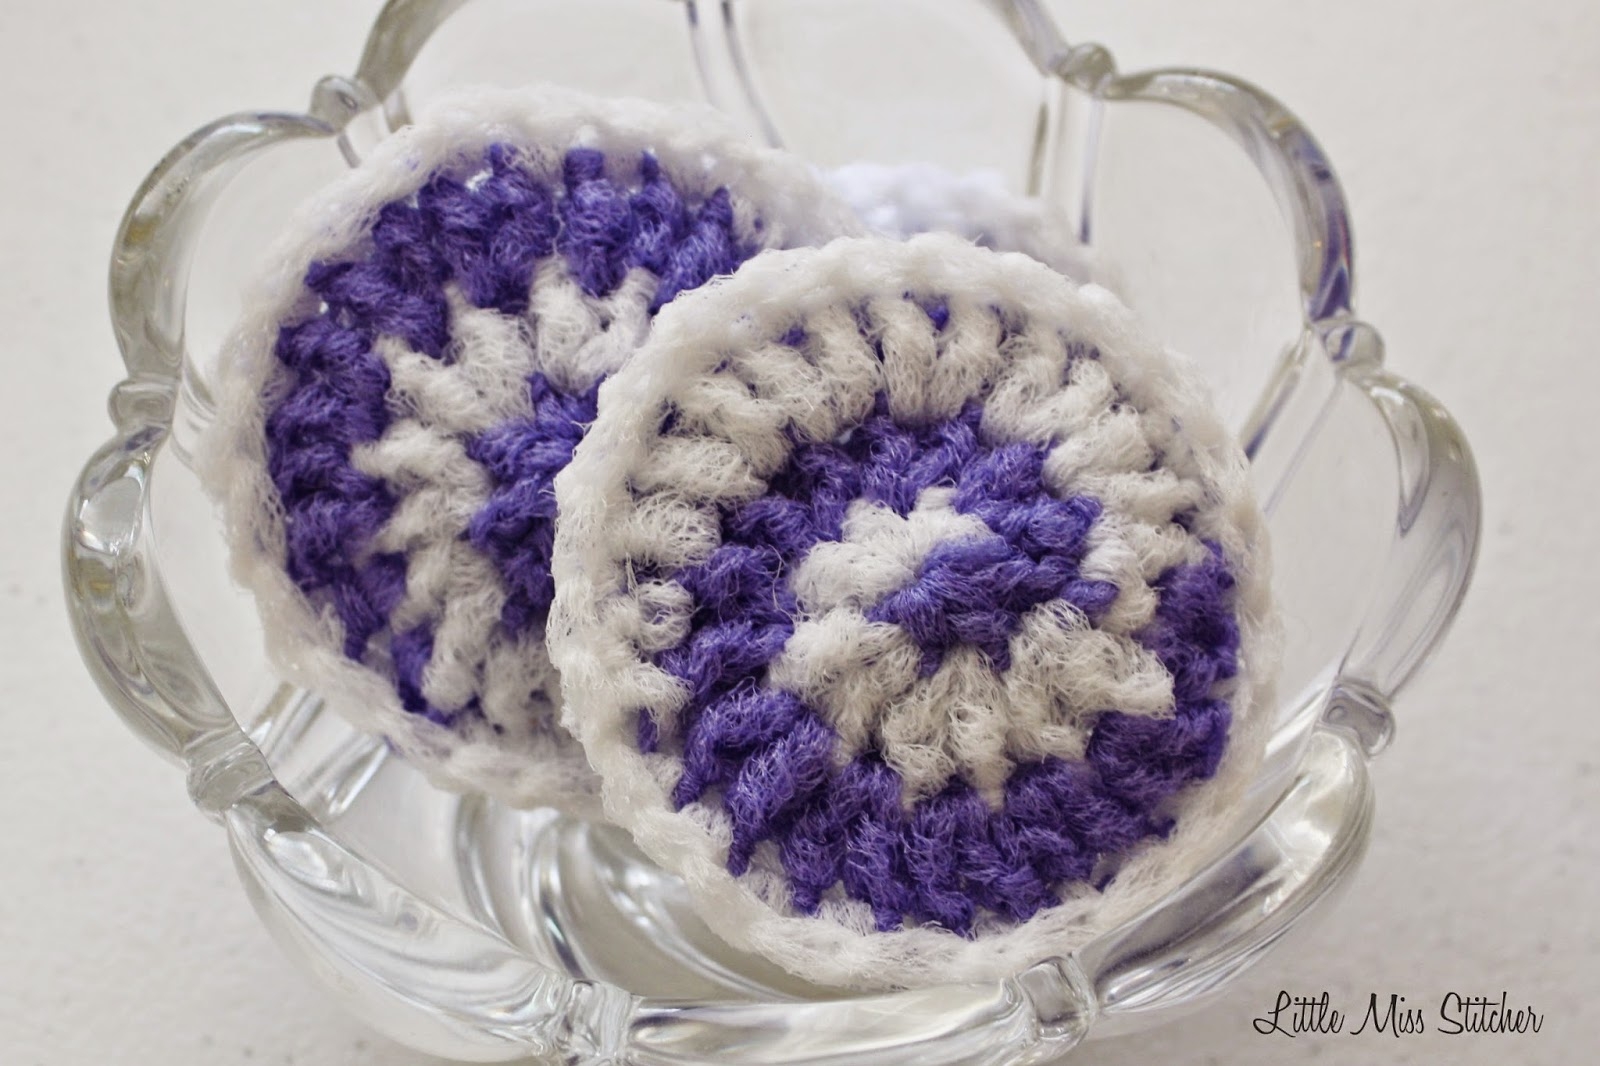 http://little-miss-stitcher.blogspot.com/2014/11/candy-swirl-crochet-scrubbie.html